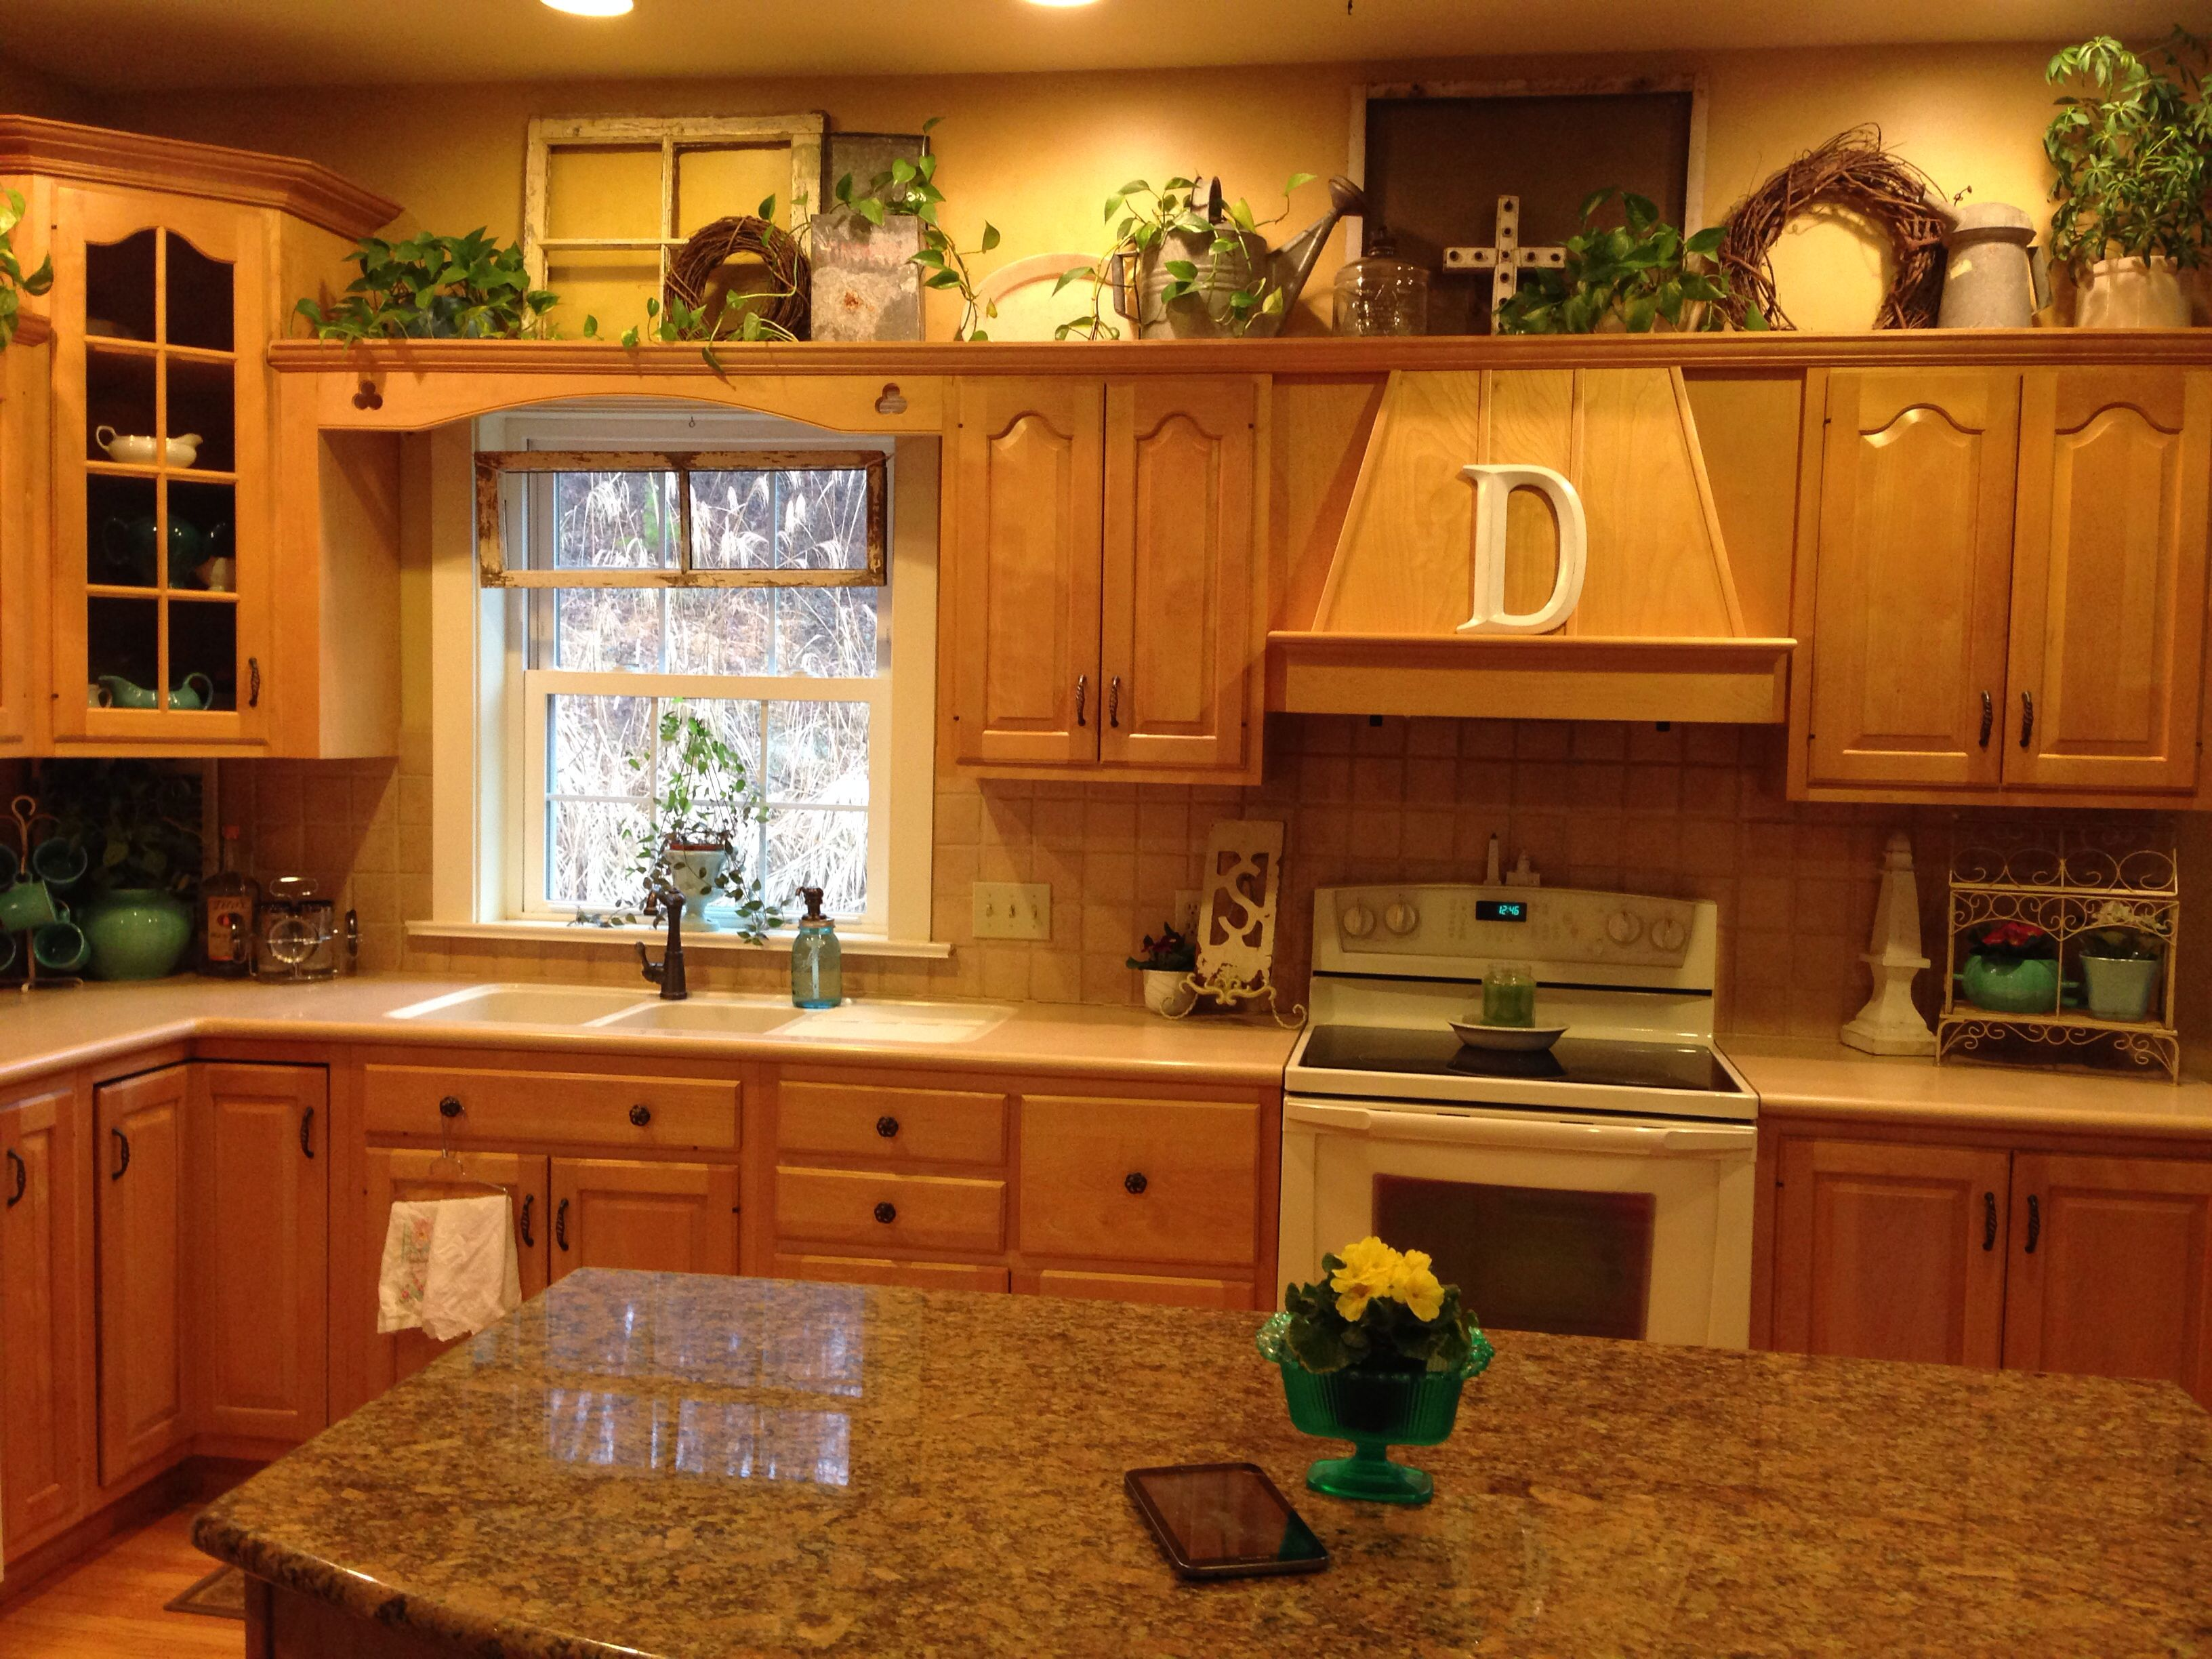 Springtime kitchen decor using vintage items.Above the cabinets I ...